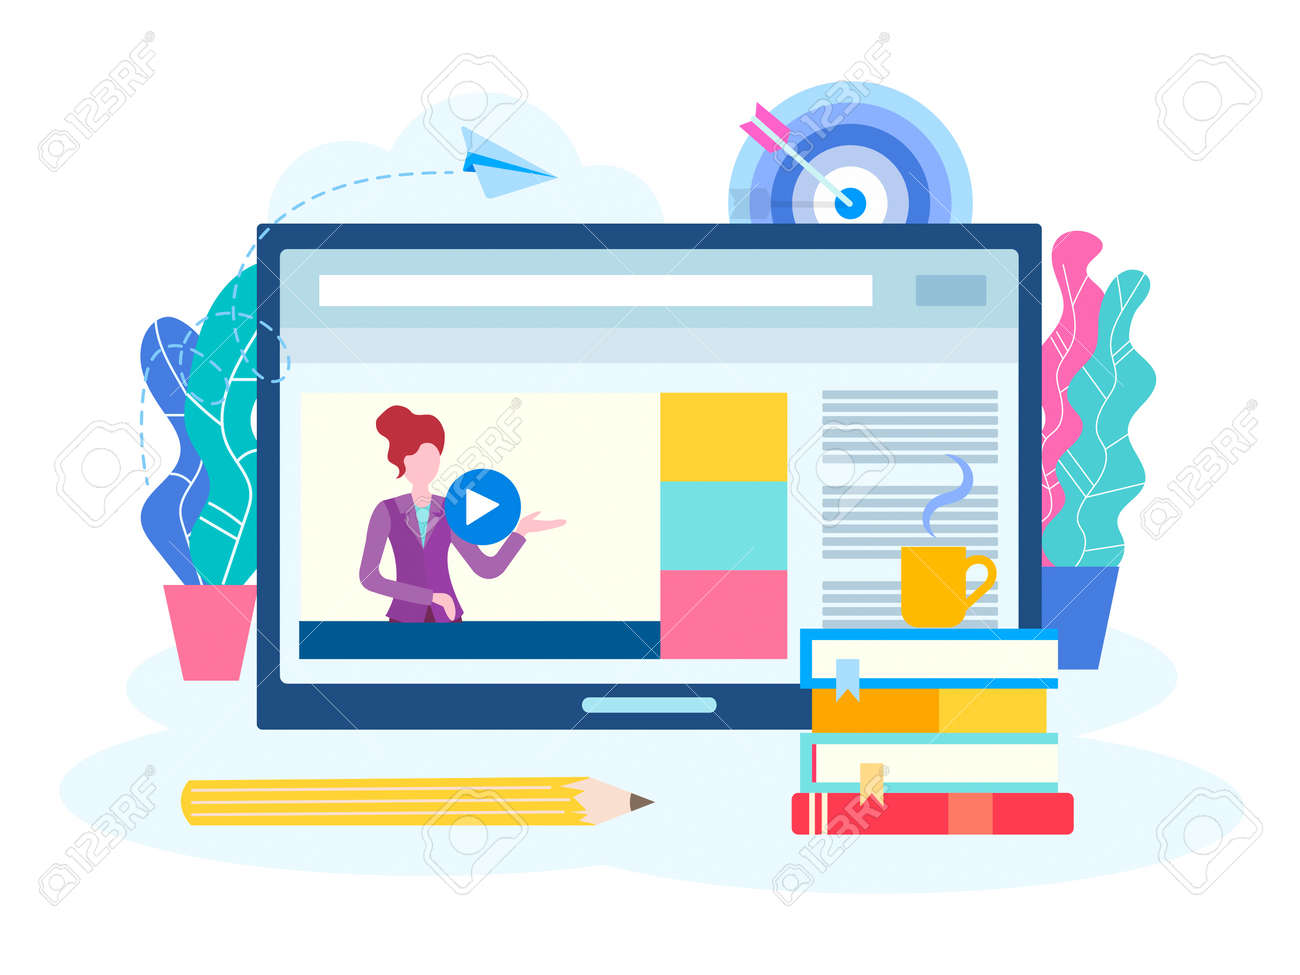 Online lesson, webinar, seminar, courses on the Internet. A young teacher conducts a lesson online. Vector illustration for social media marketing. - 120440617